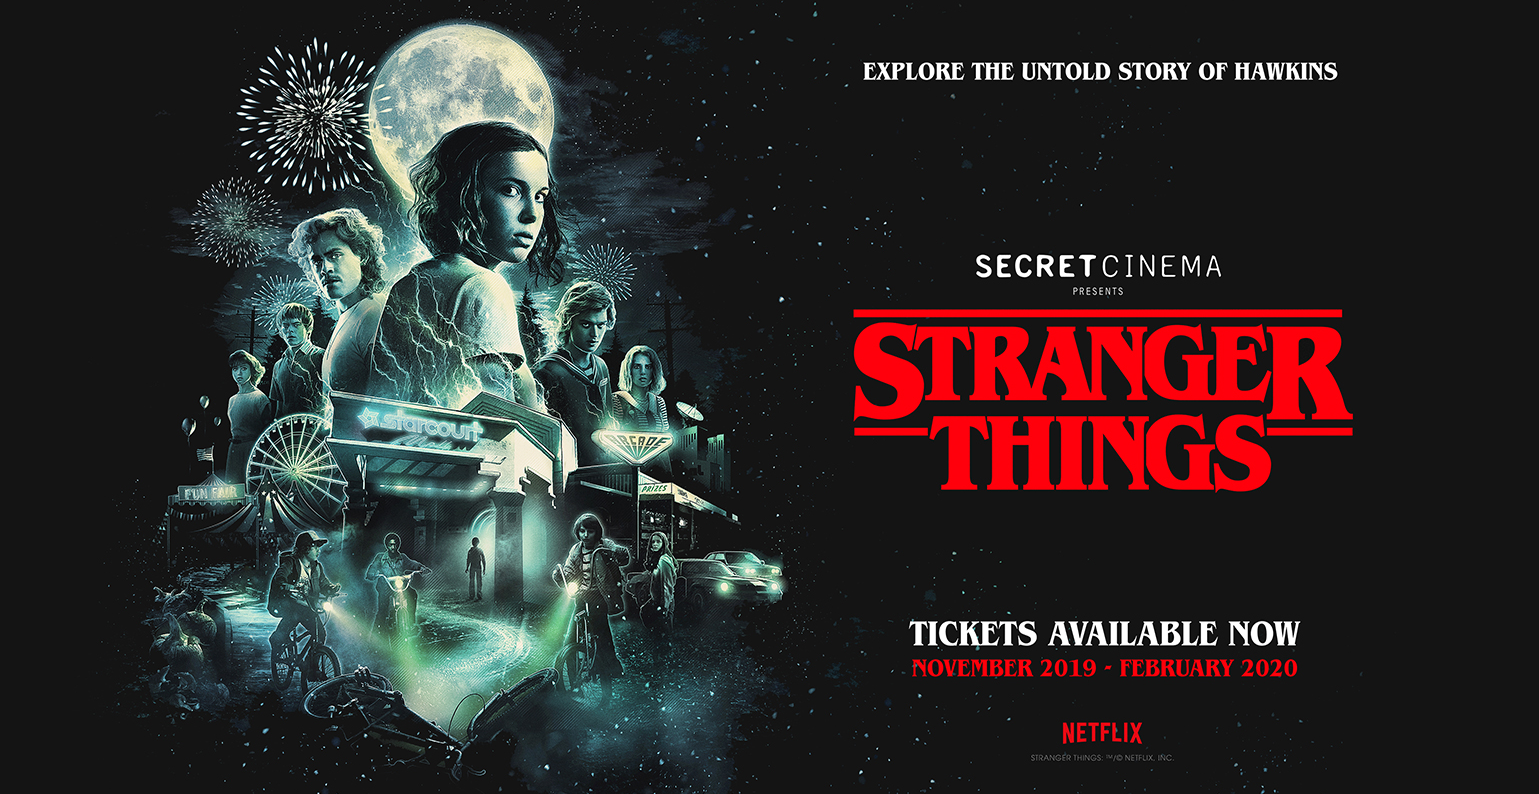 SECRET CINEMA PRESENTS STRANGER THINGS - A THRILLING IMMERSIVE EXPERIENCE